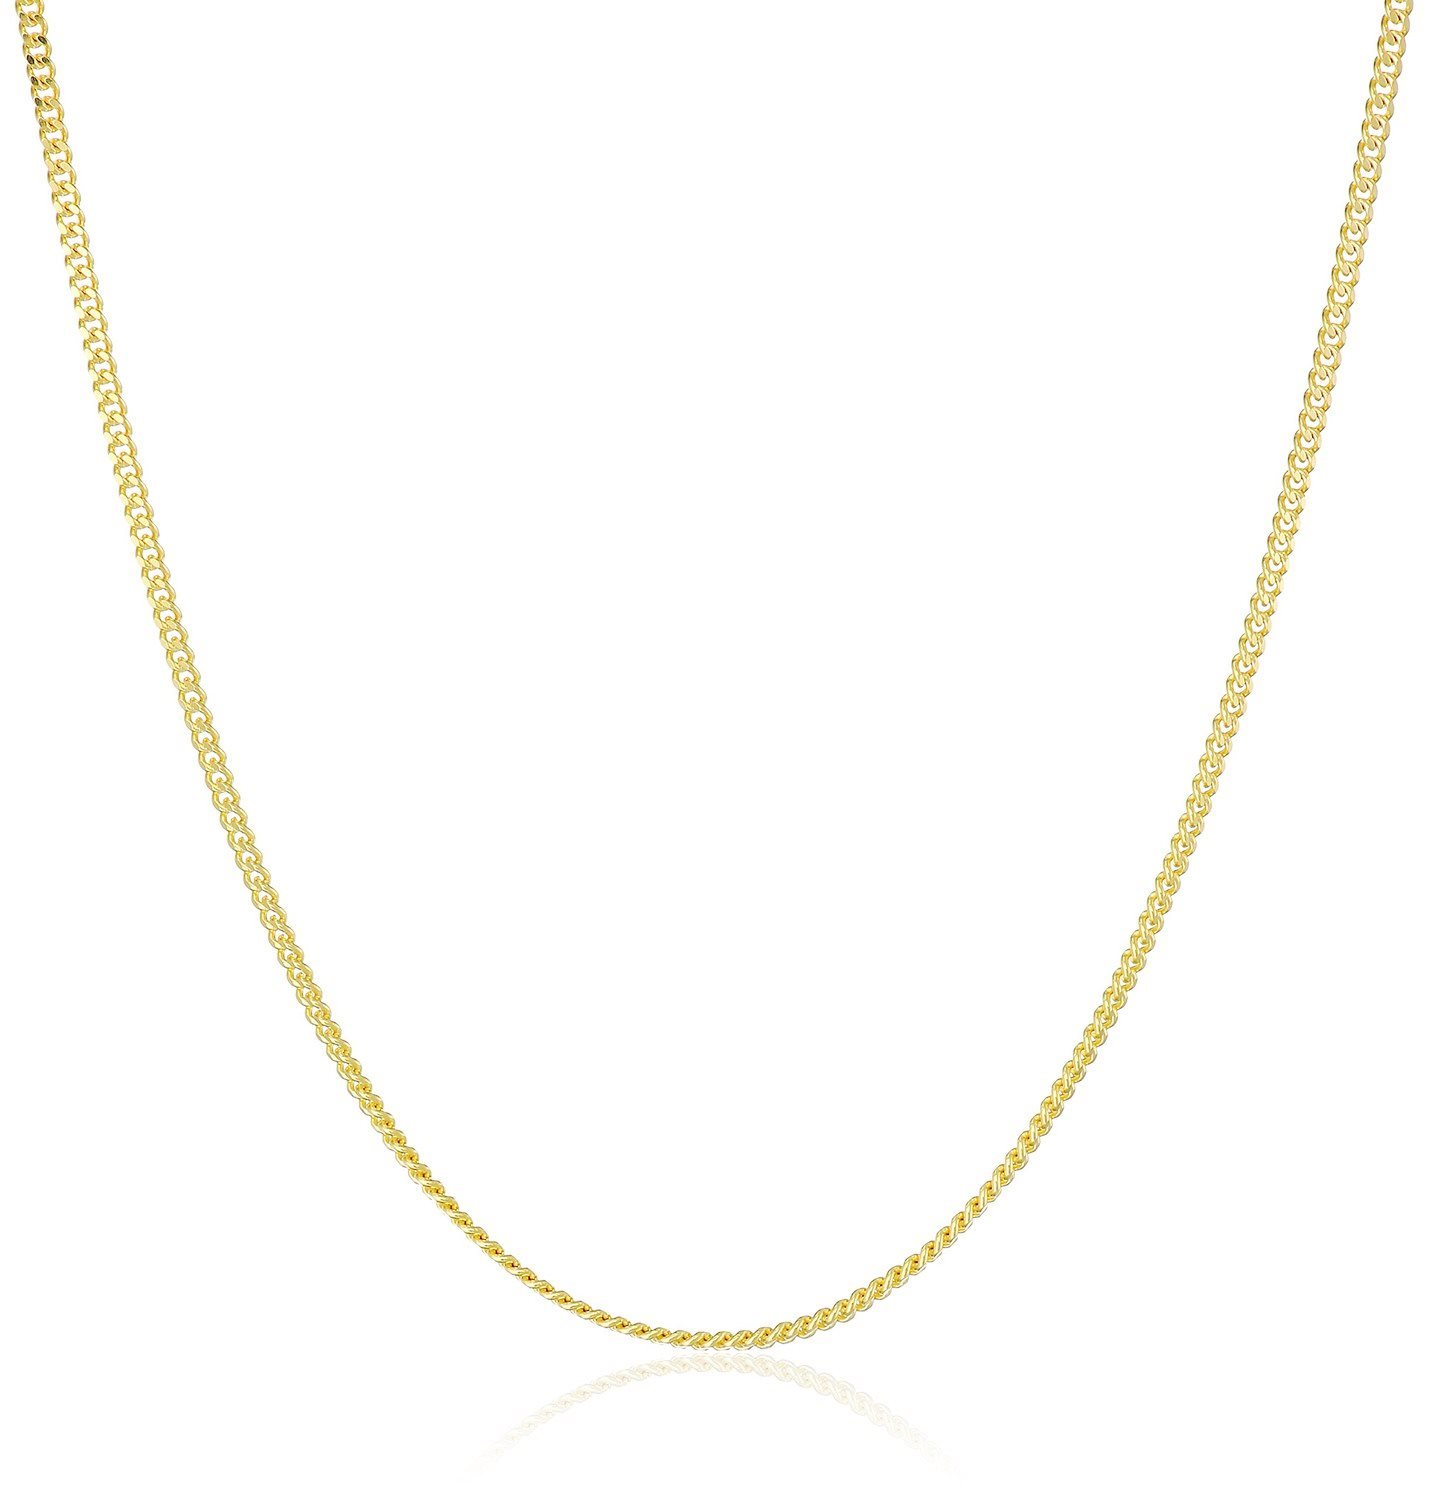 14K Solid Yellow Gold 1.5mm Cuban Curb Link Chain Necklace- Made in Italy- 16''-30'' (20.00)